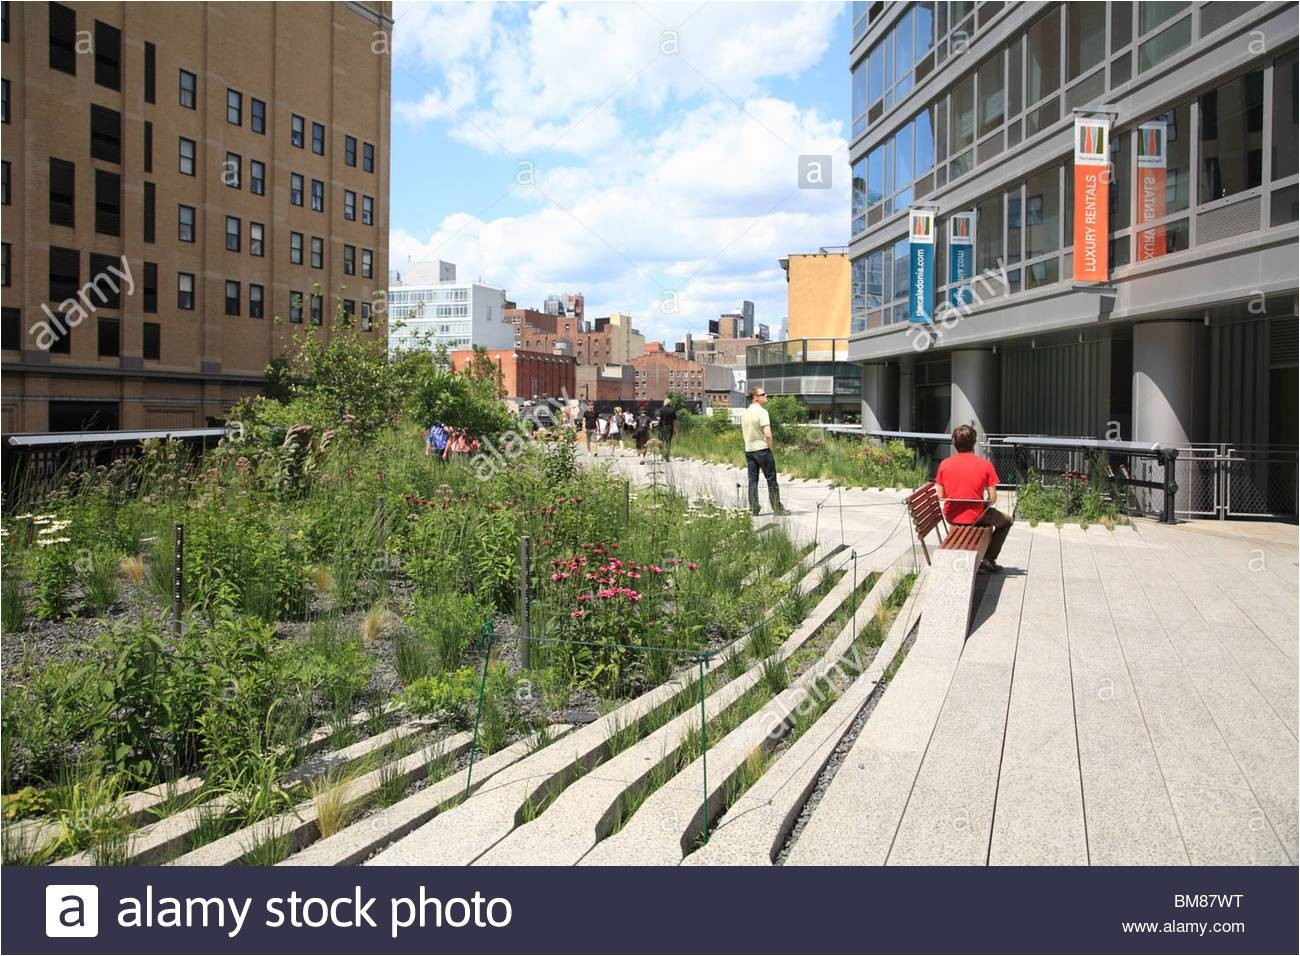 highline elevated public park on former rail tracks manhattan new york city usa